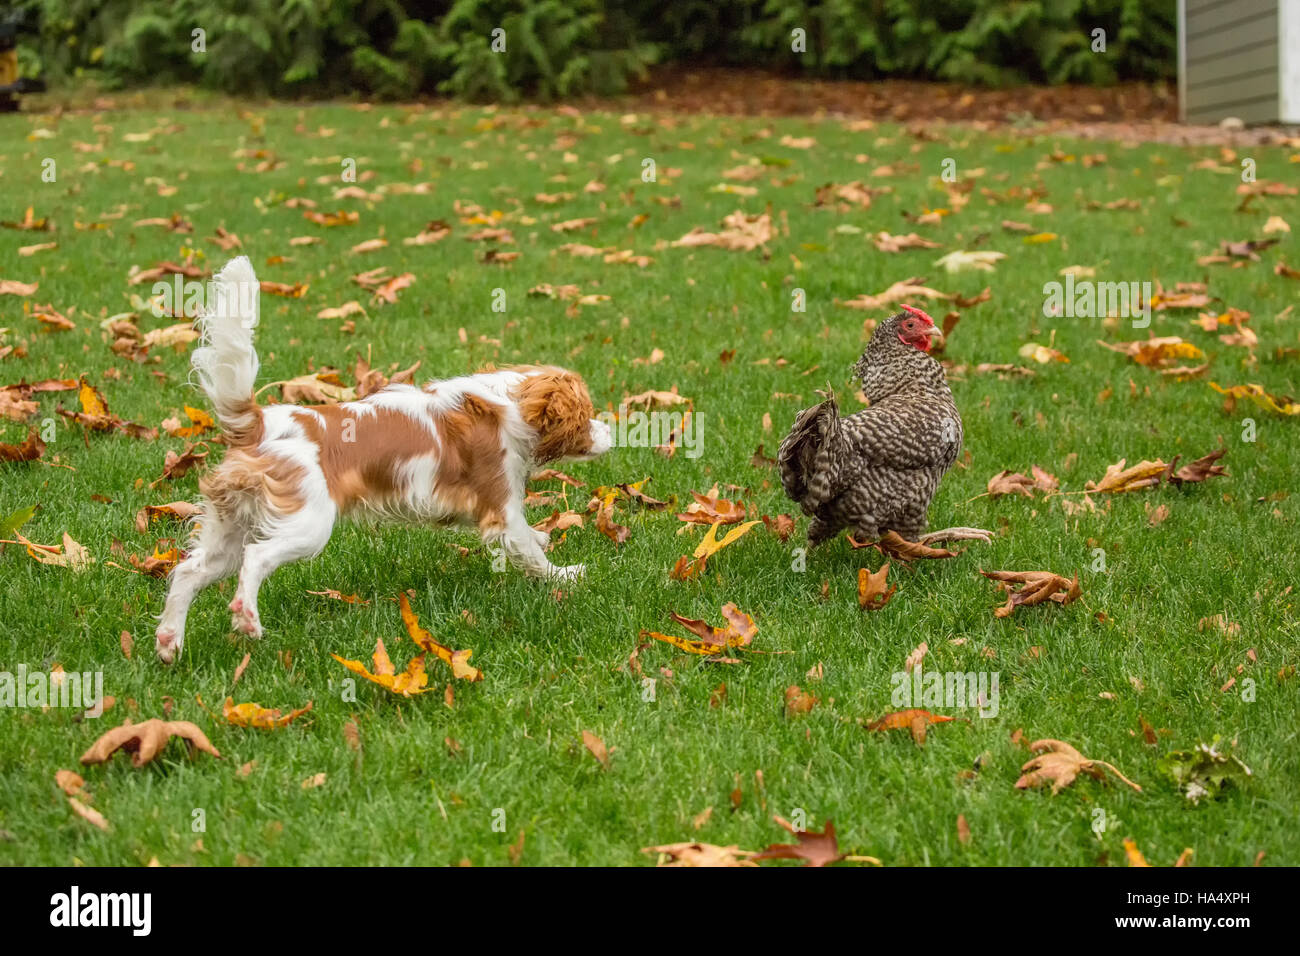 Six month old Cavalier King Charles Spaniel puppy trying to catch a free-ranging Dominique chicken outside on an - Stock Image